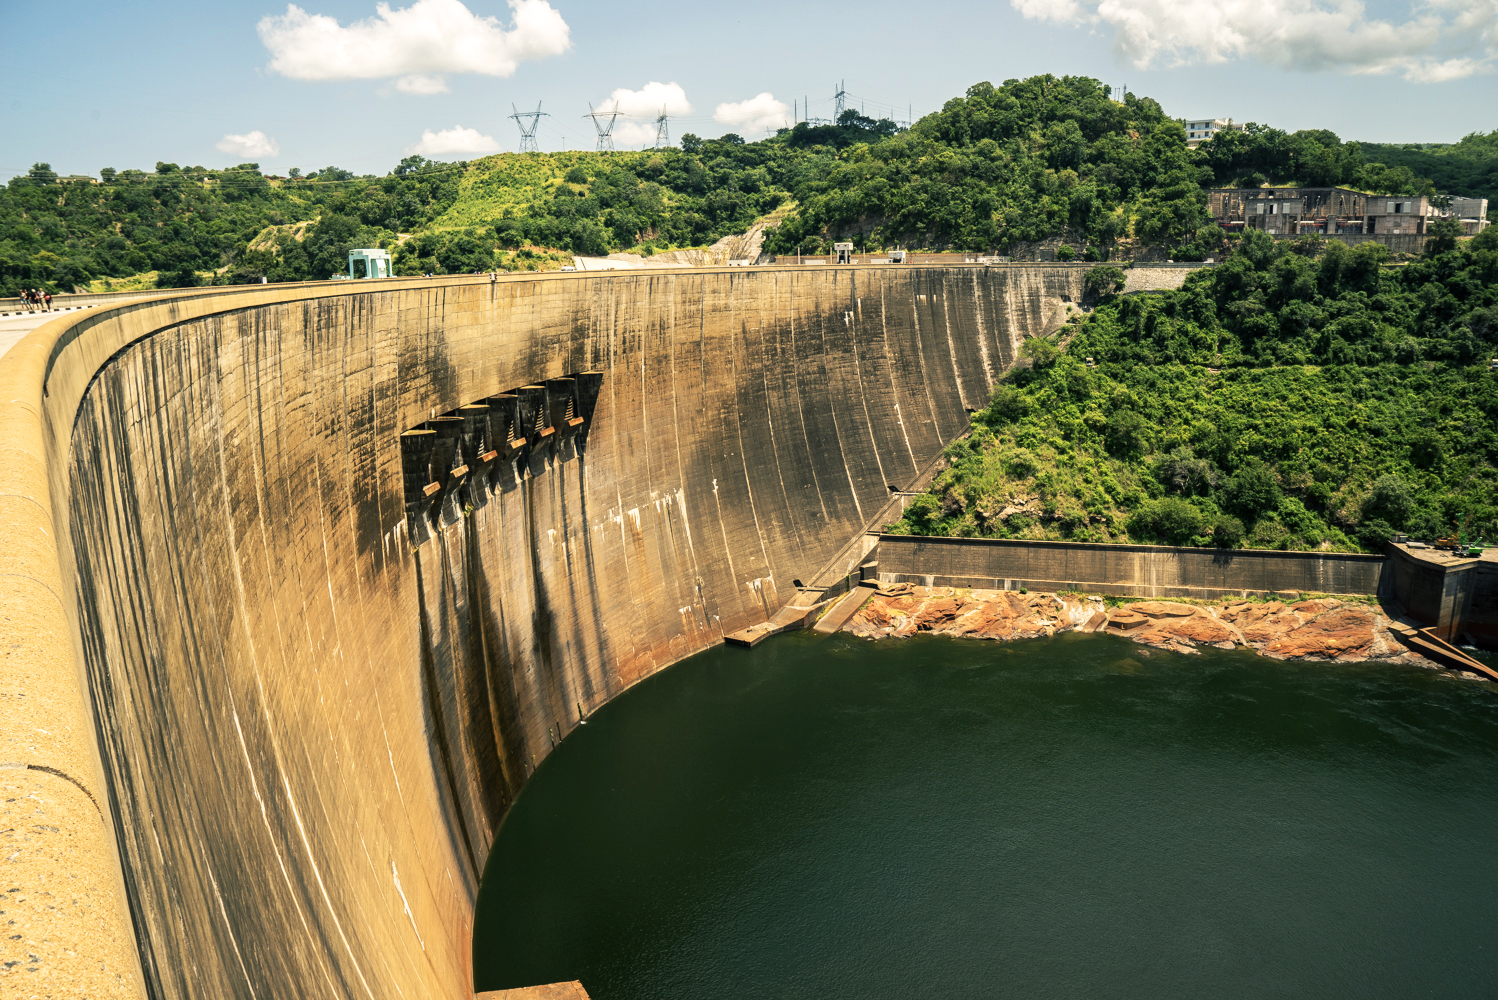 The Kariba hydropower dam in Zambia